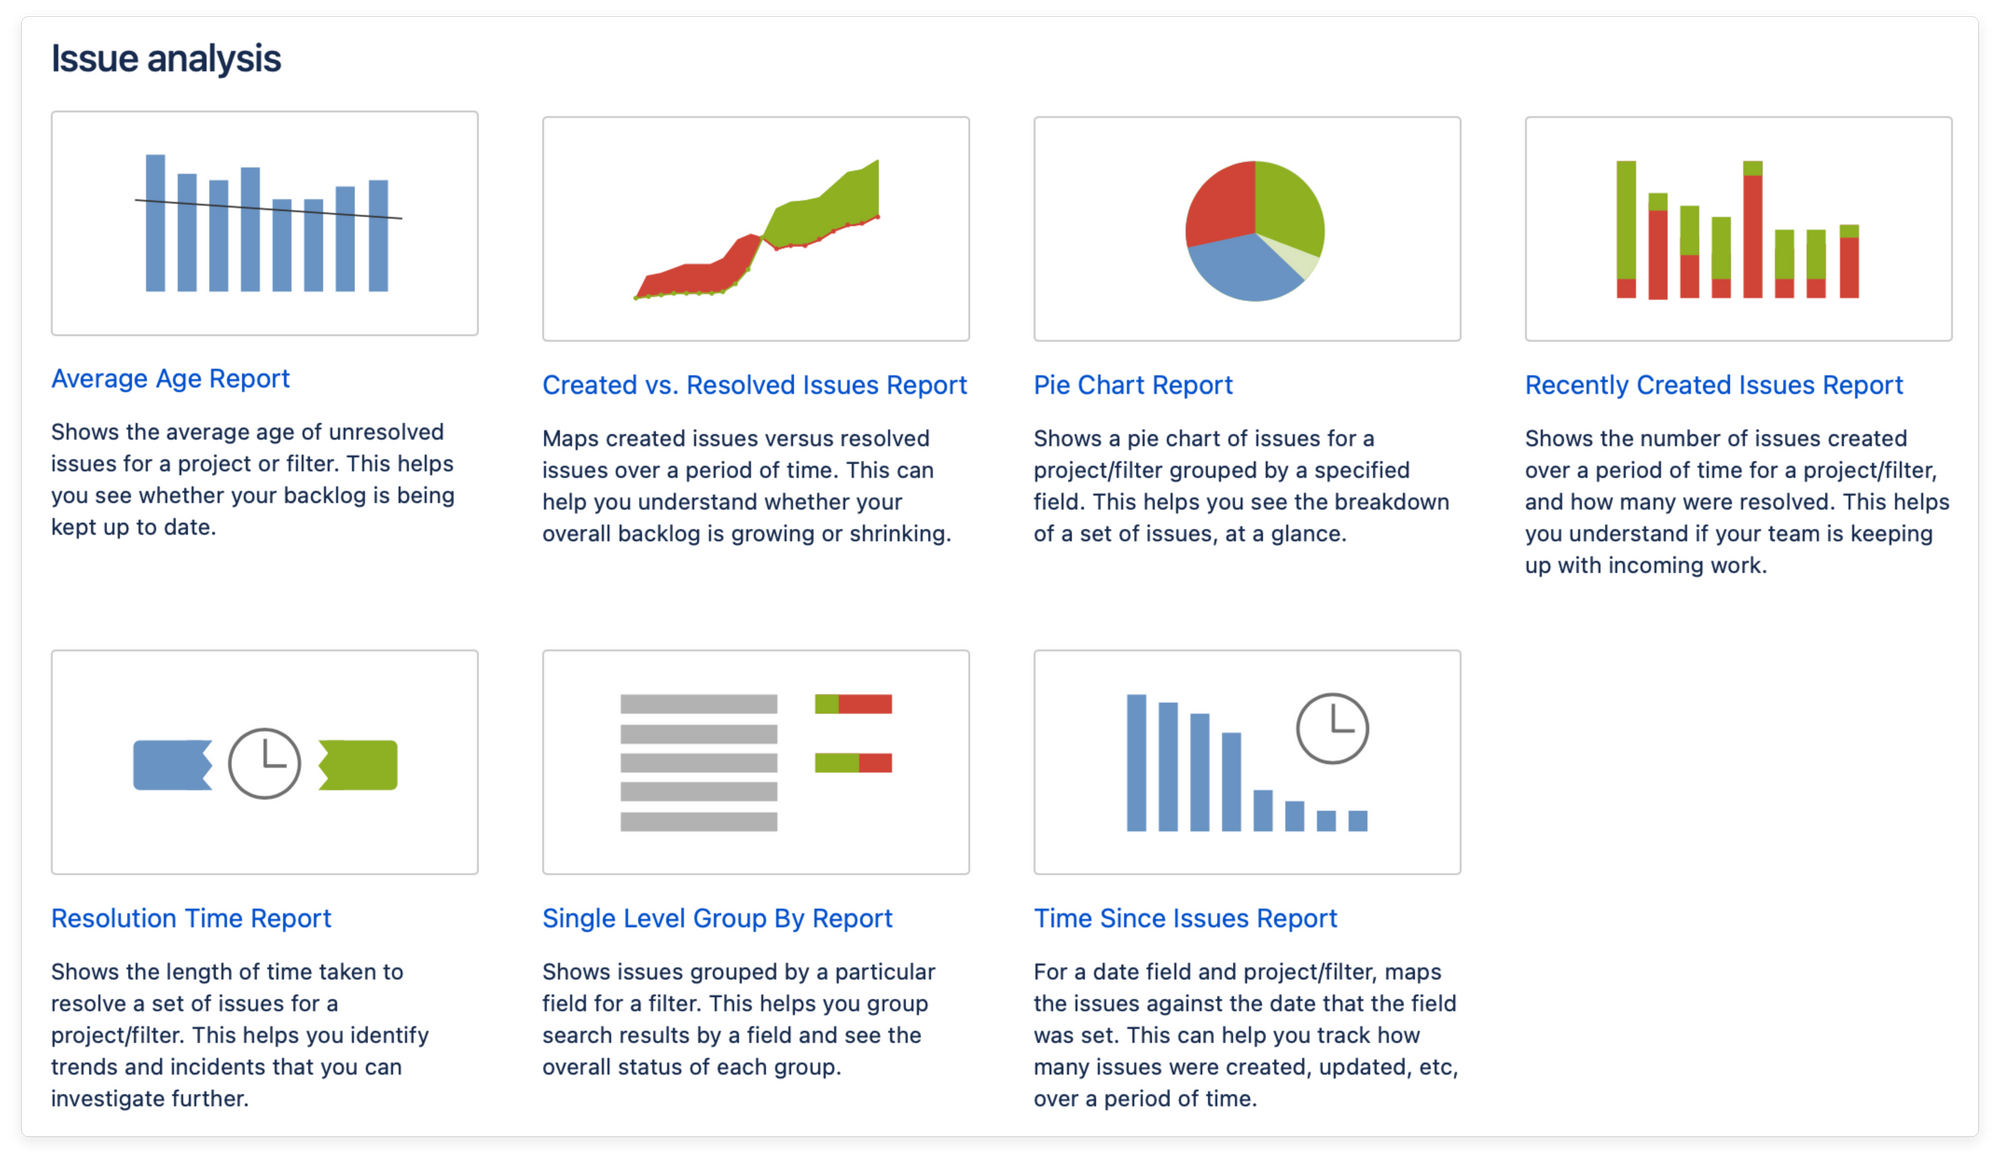 Issue analysis project reports in Jira